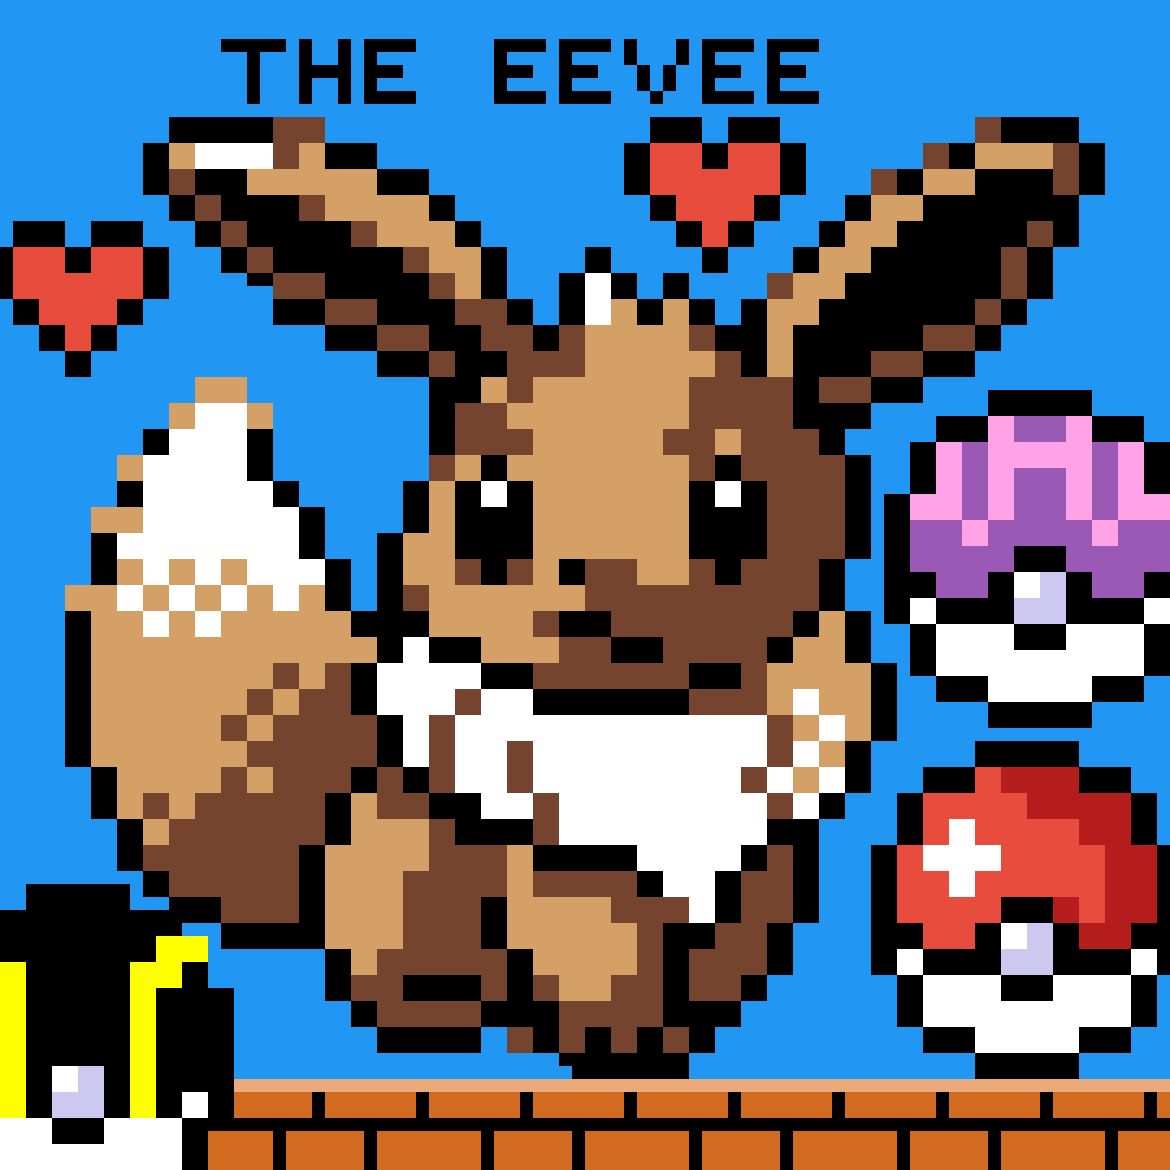 main-image-The eevee  by Sanscash